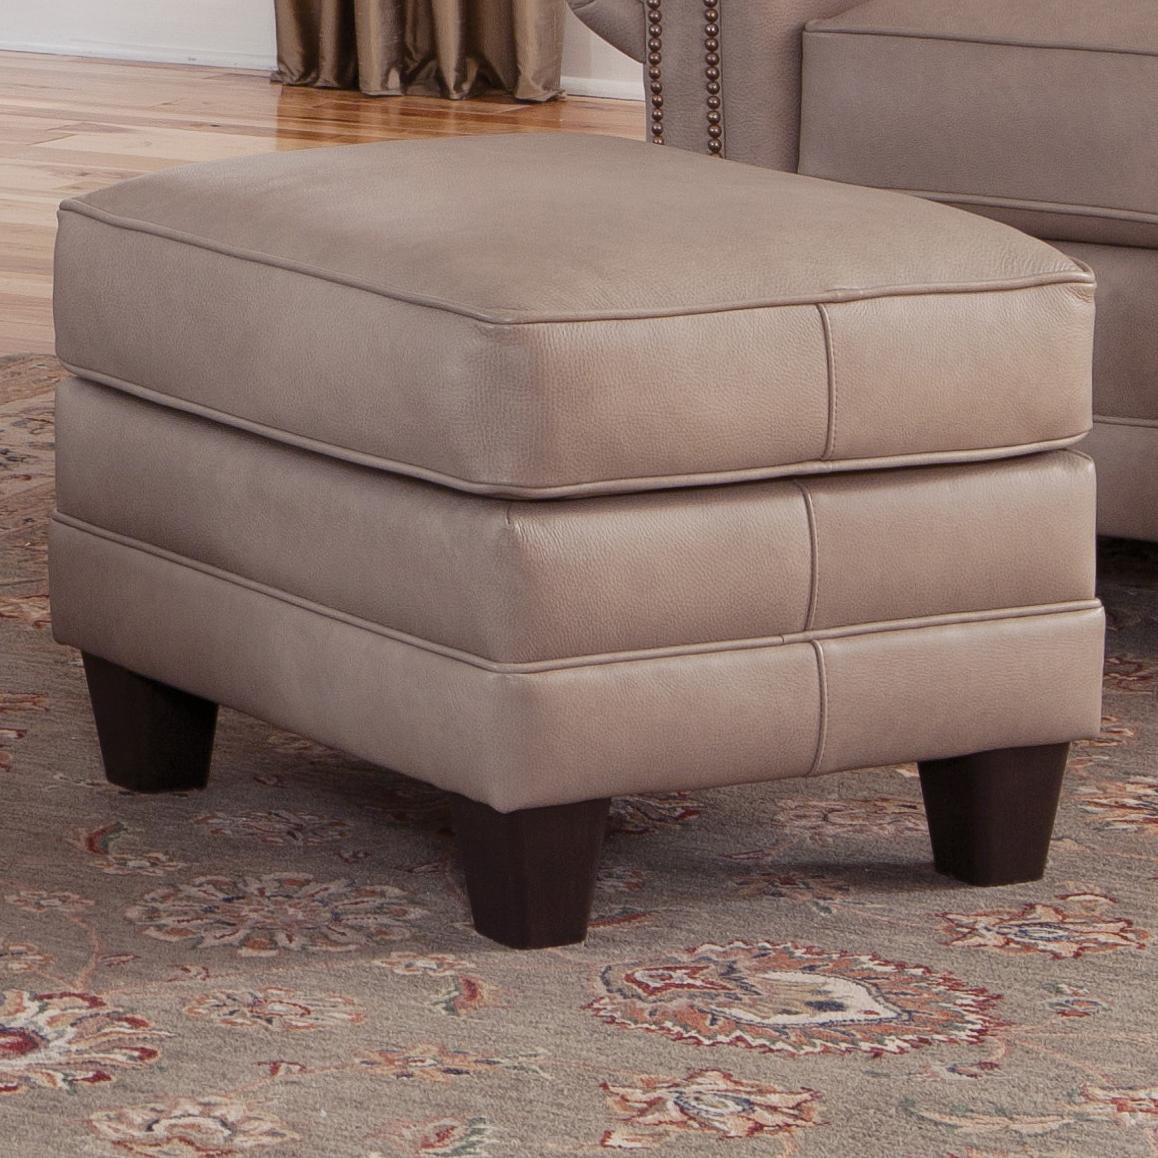 397 Upholstered Ottoman by Smith Brothers at Rooms for Less